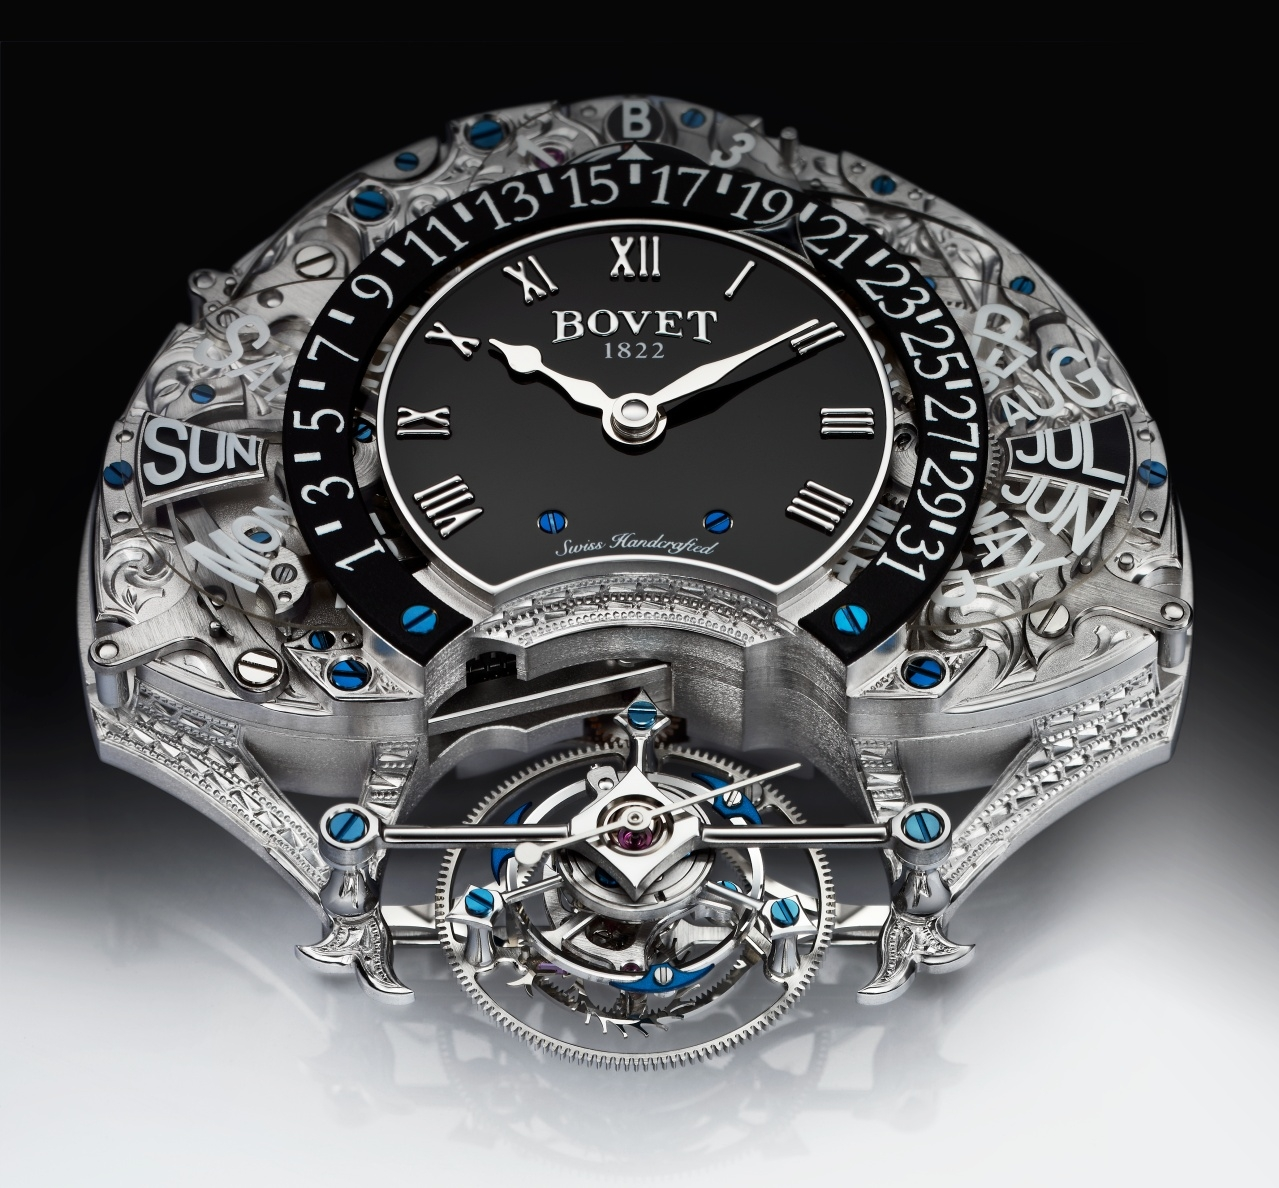 Movement of Bovet's Amadeo Fleurier Virtuoso III